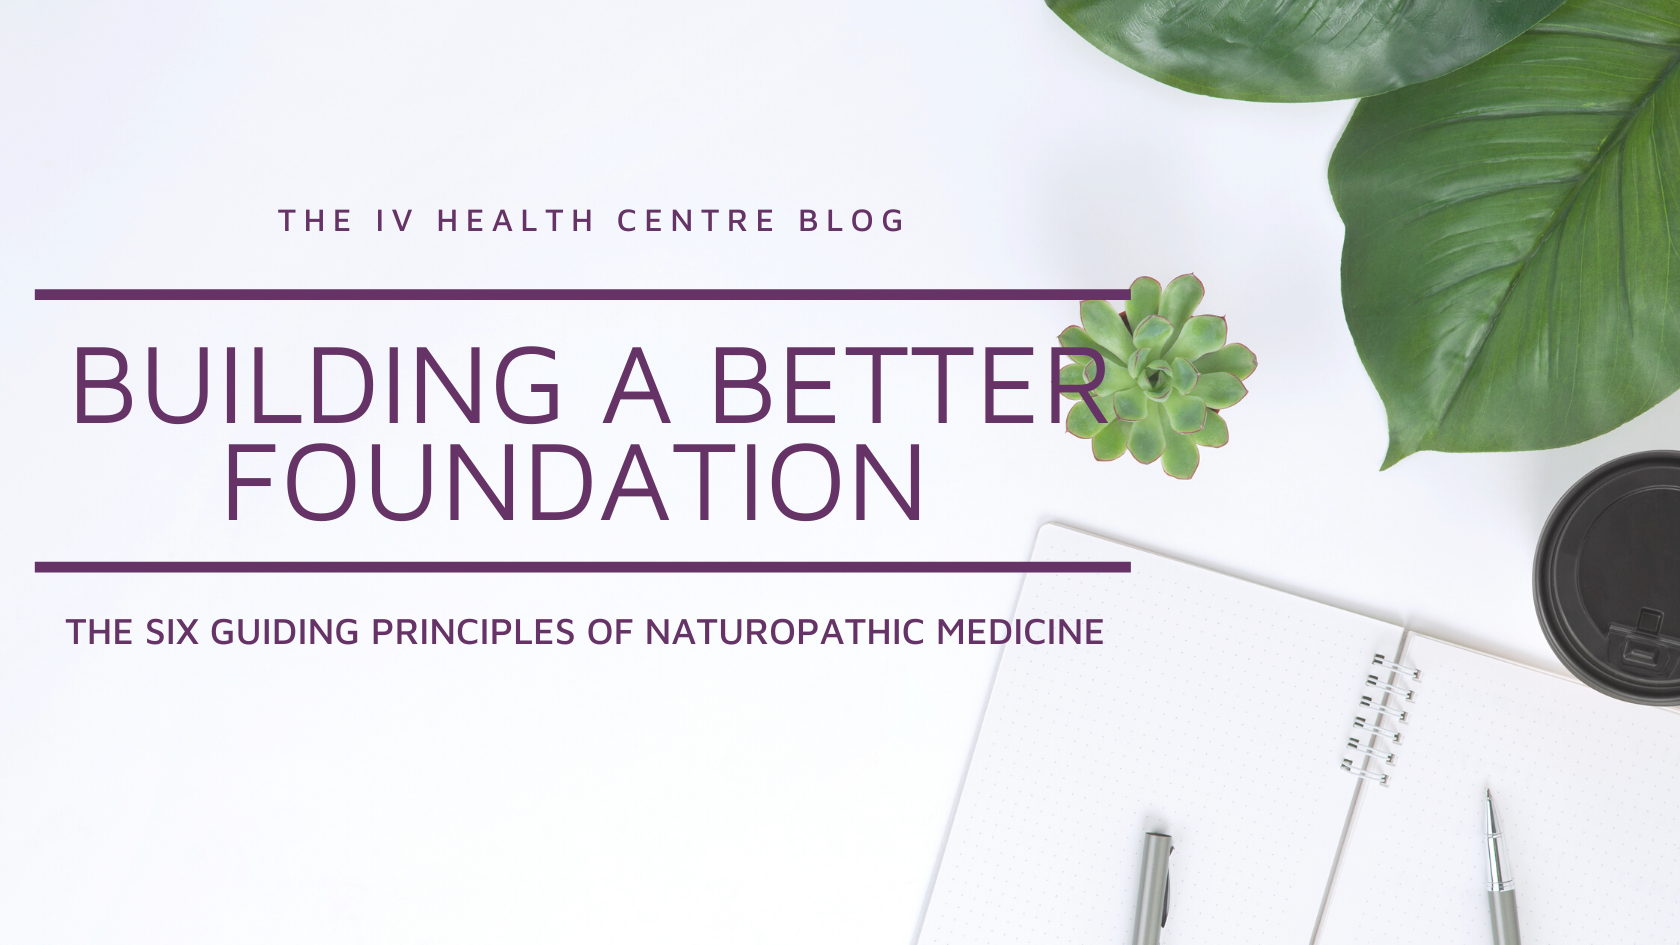 Building a Better Foundation